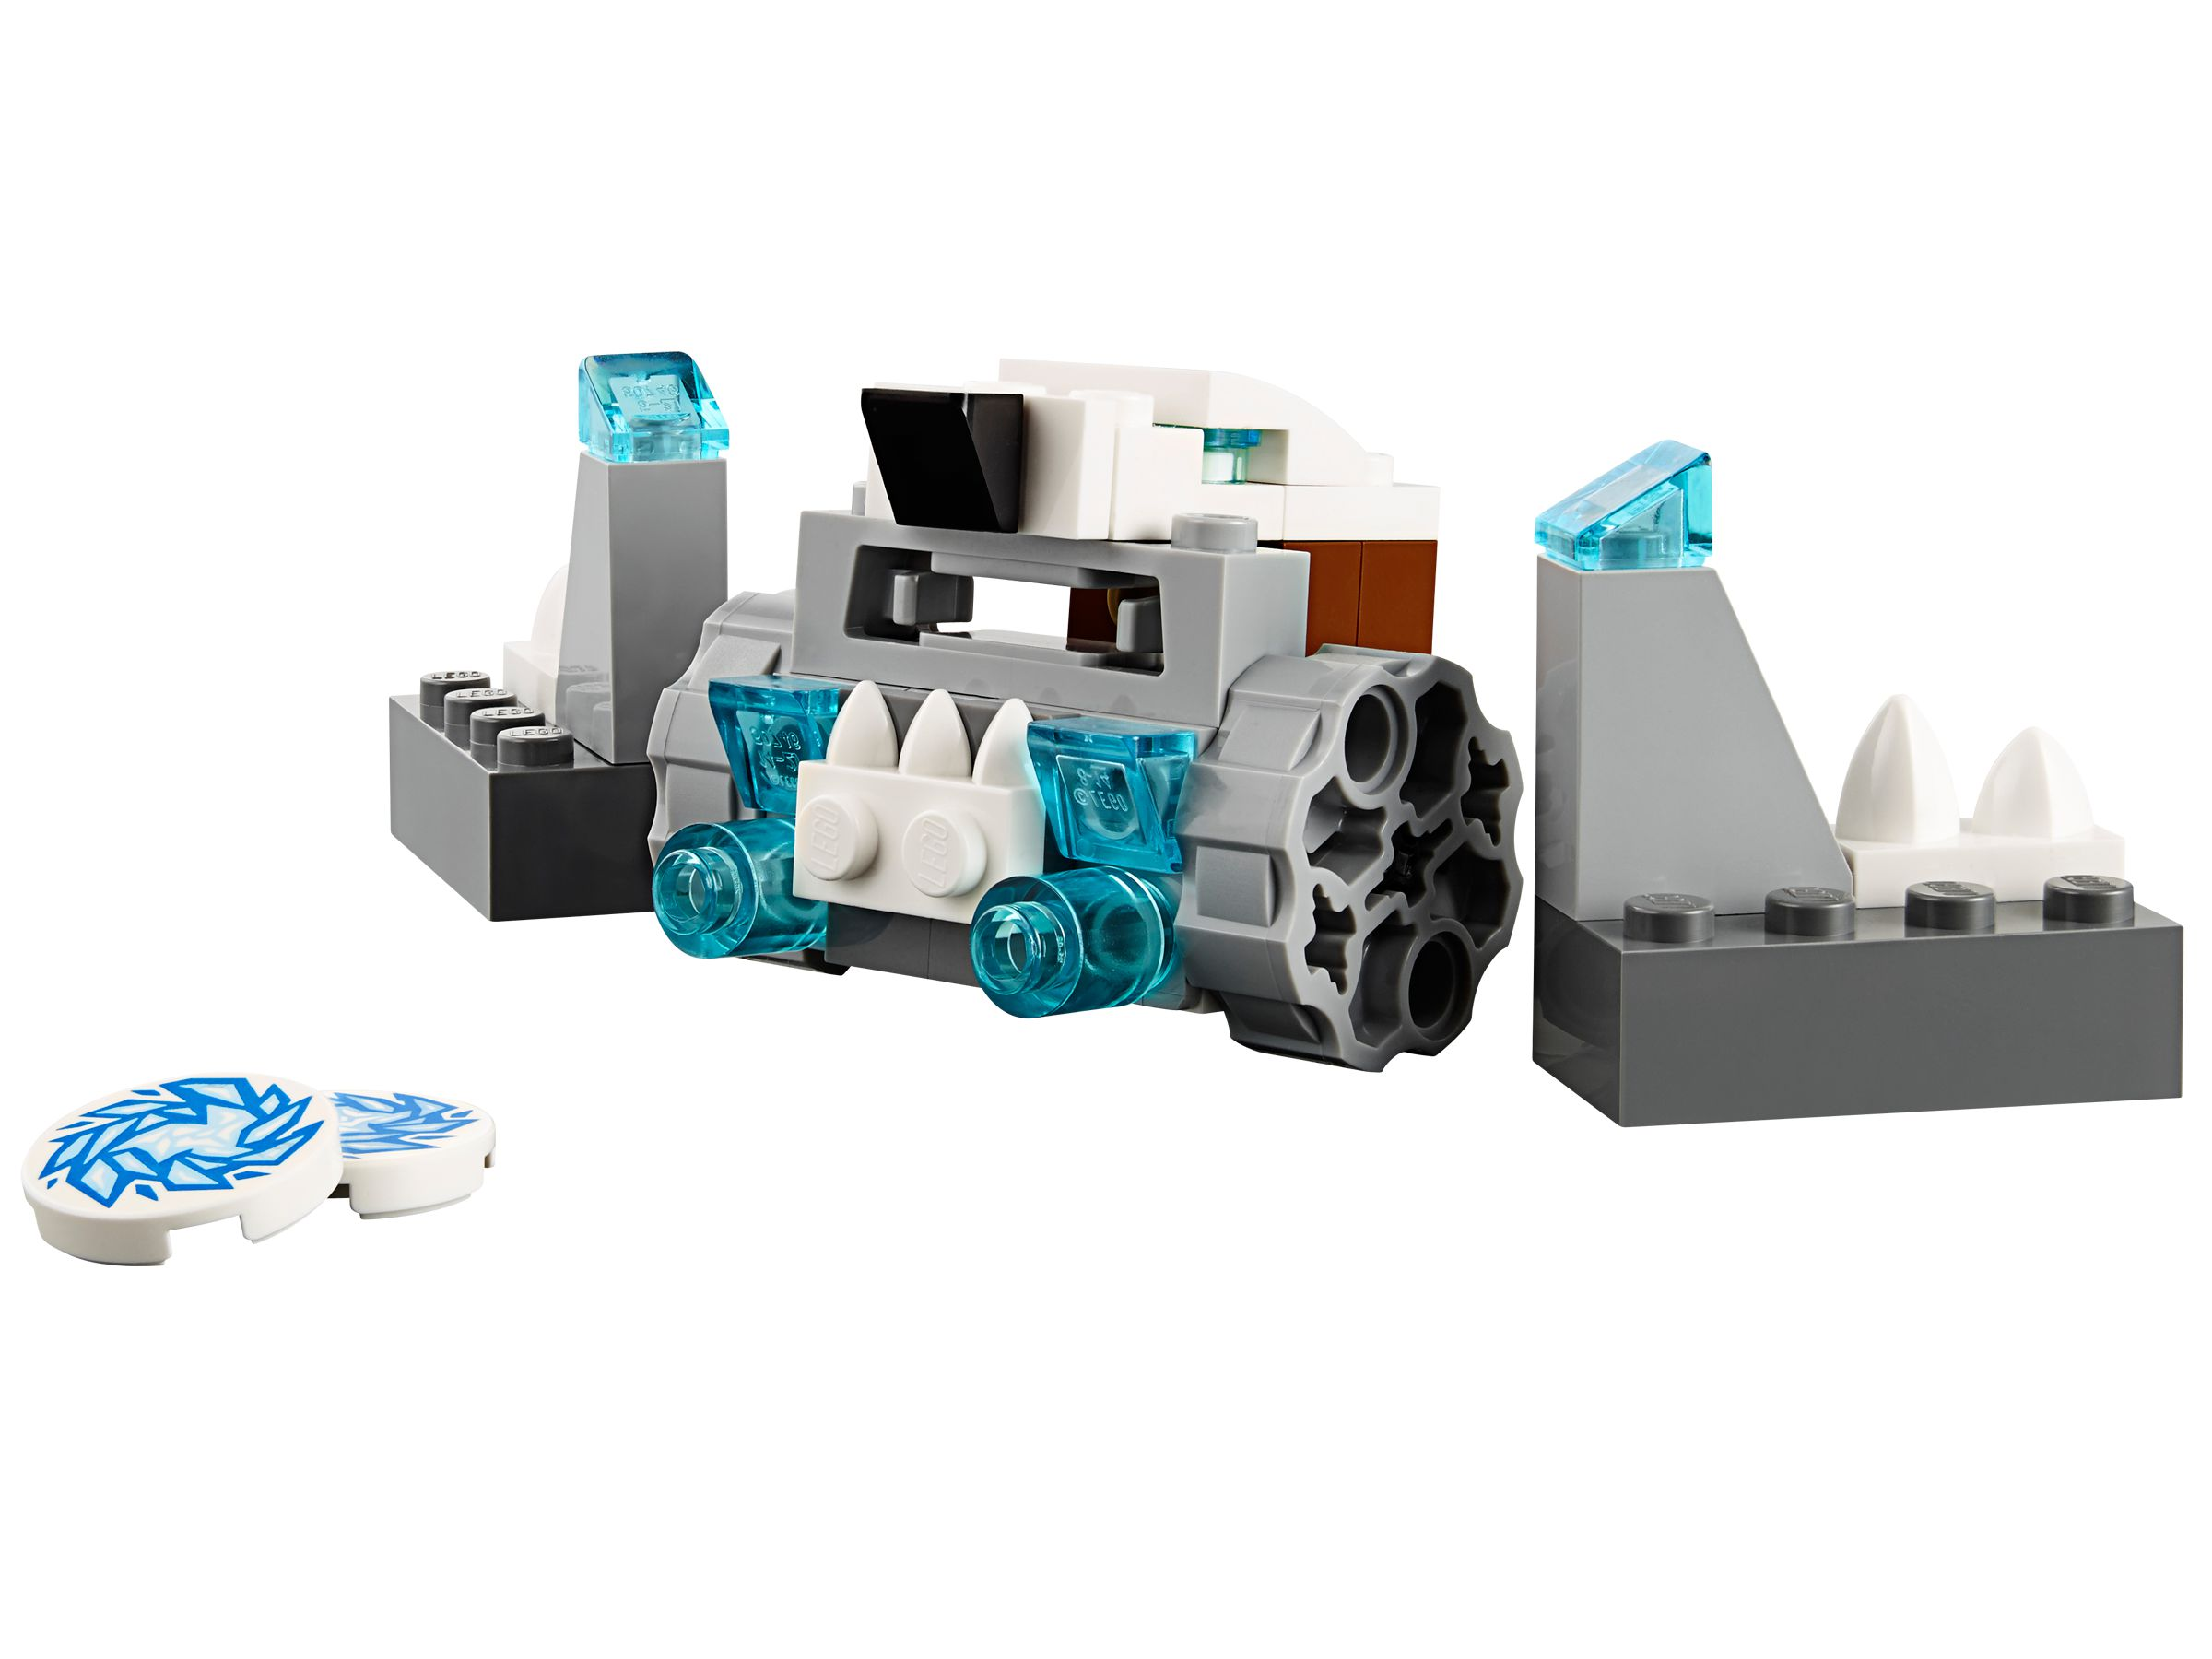 LEGO Legends Of Chima 70230 Eisbärstamm-Set LEGO_70230_alt6.jpg